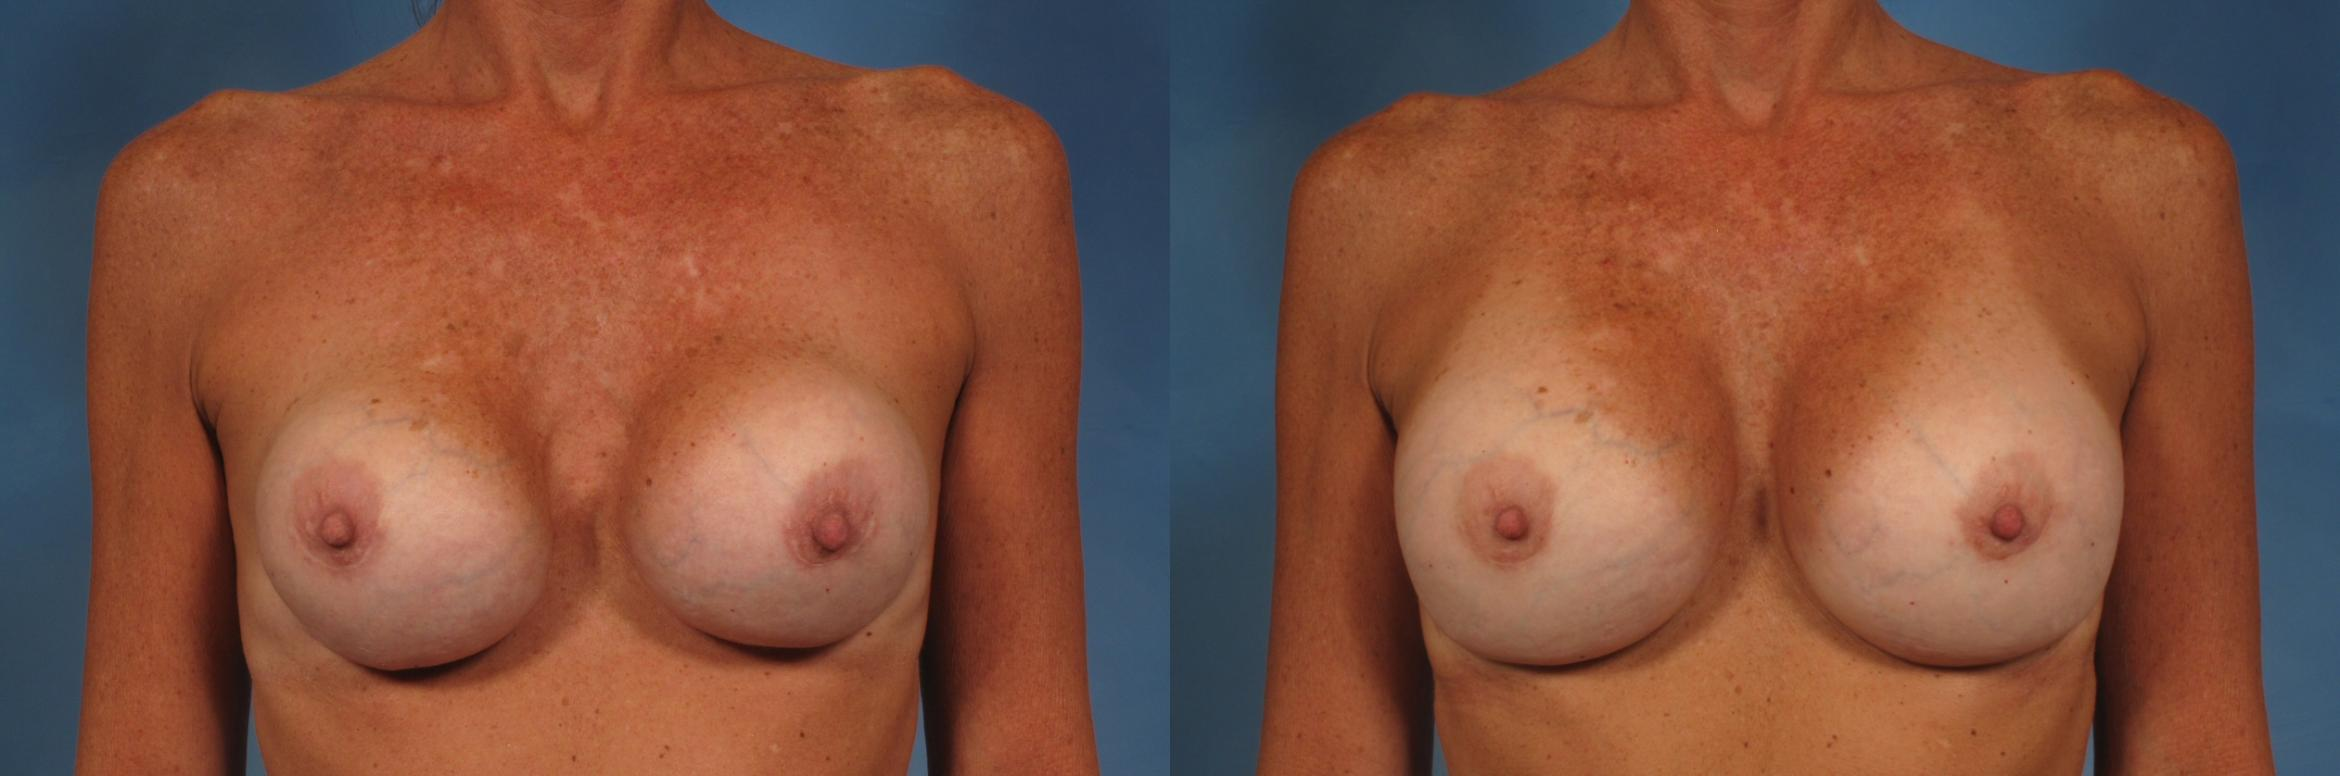 Breast Implant Exchange/Revision Case 168 Before & After View #1 | Naples, FL | Kent V. Hasen, M.D.